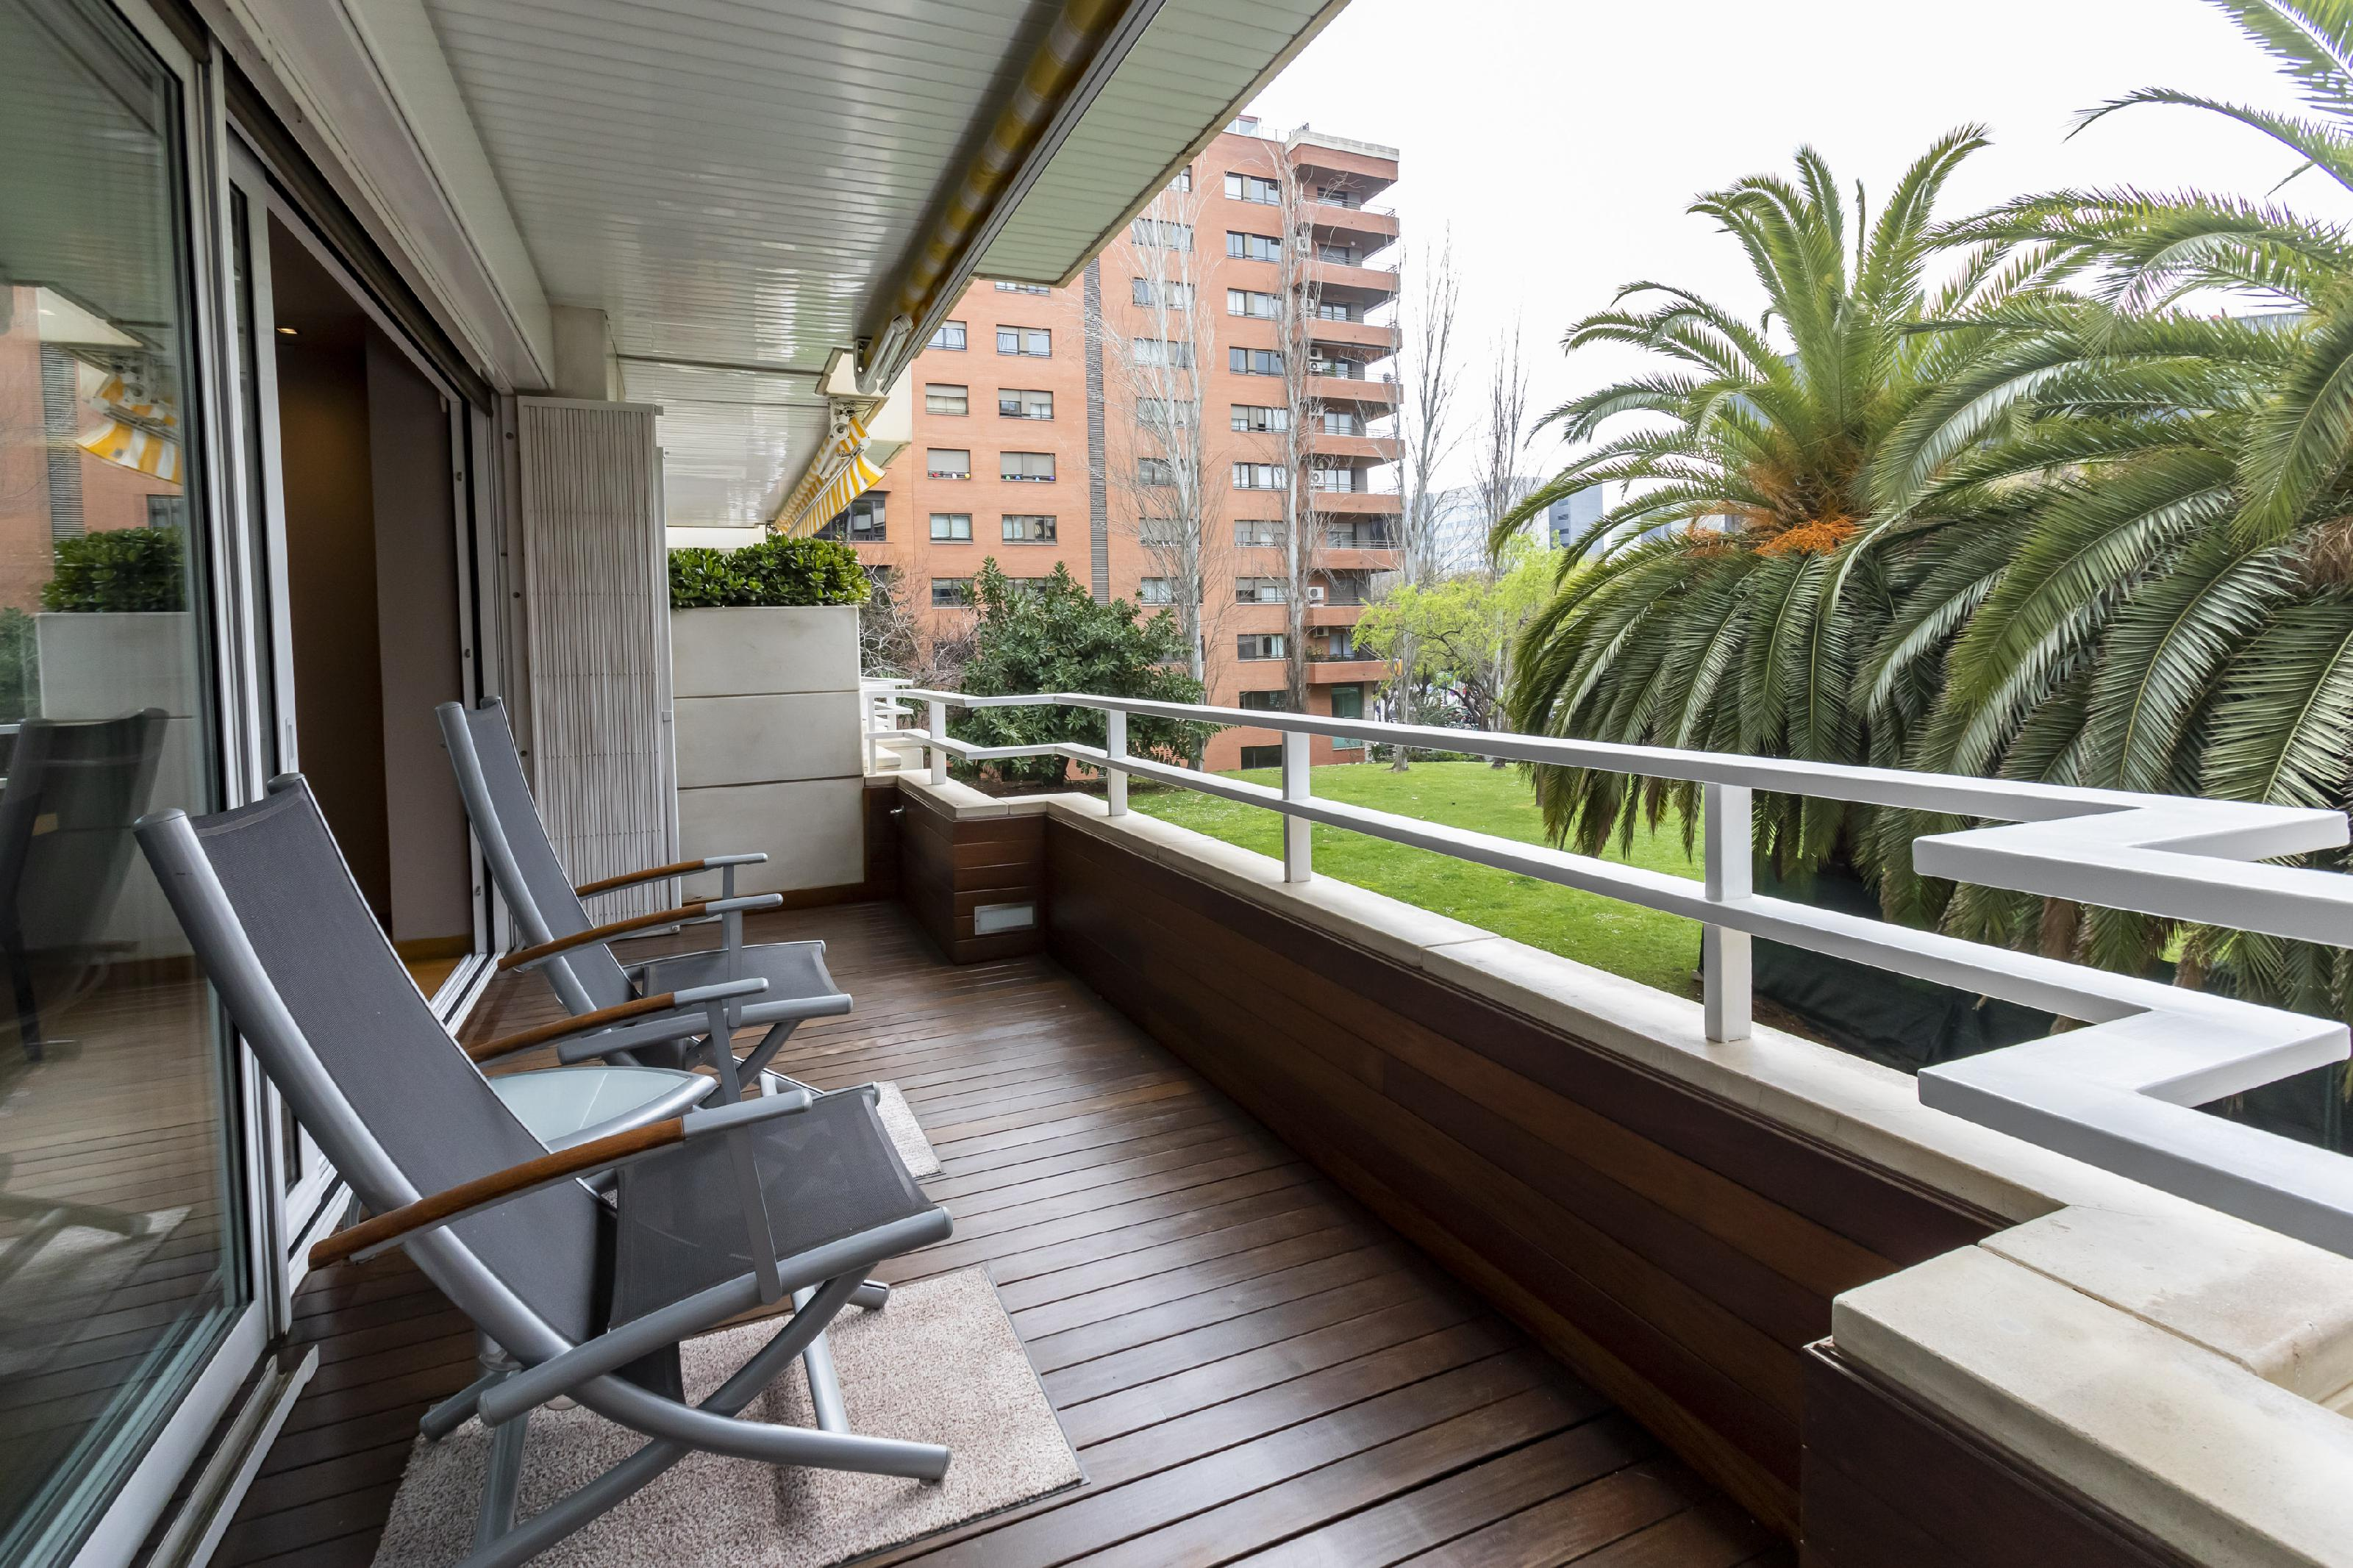 247020 Flat for sale in Les Corts, Les Corts 2